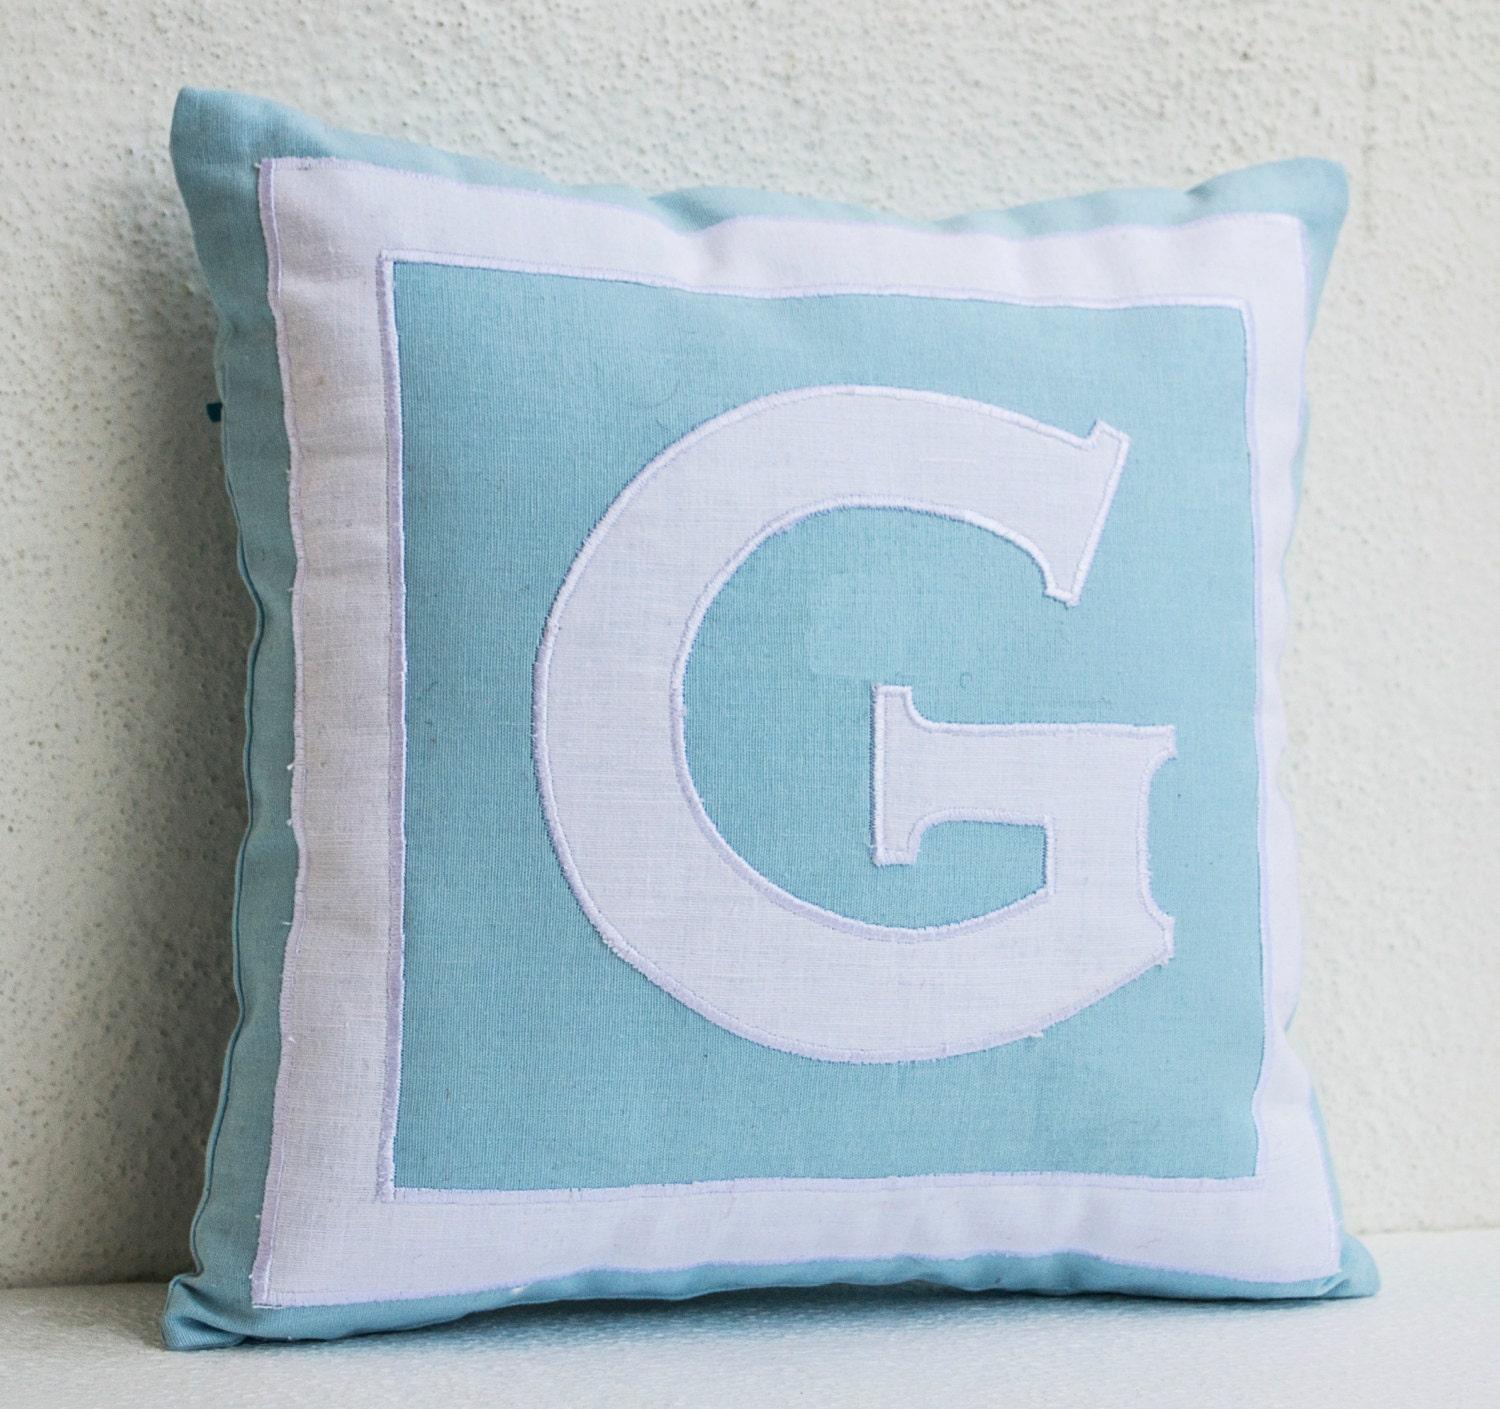 Monogrammed Throw Pillow Covers : Monogram Pillow Cover Monogrammed Throw Pillow Blue White